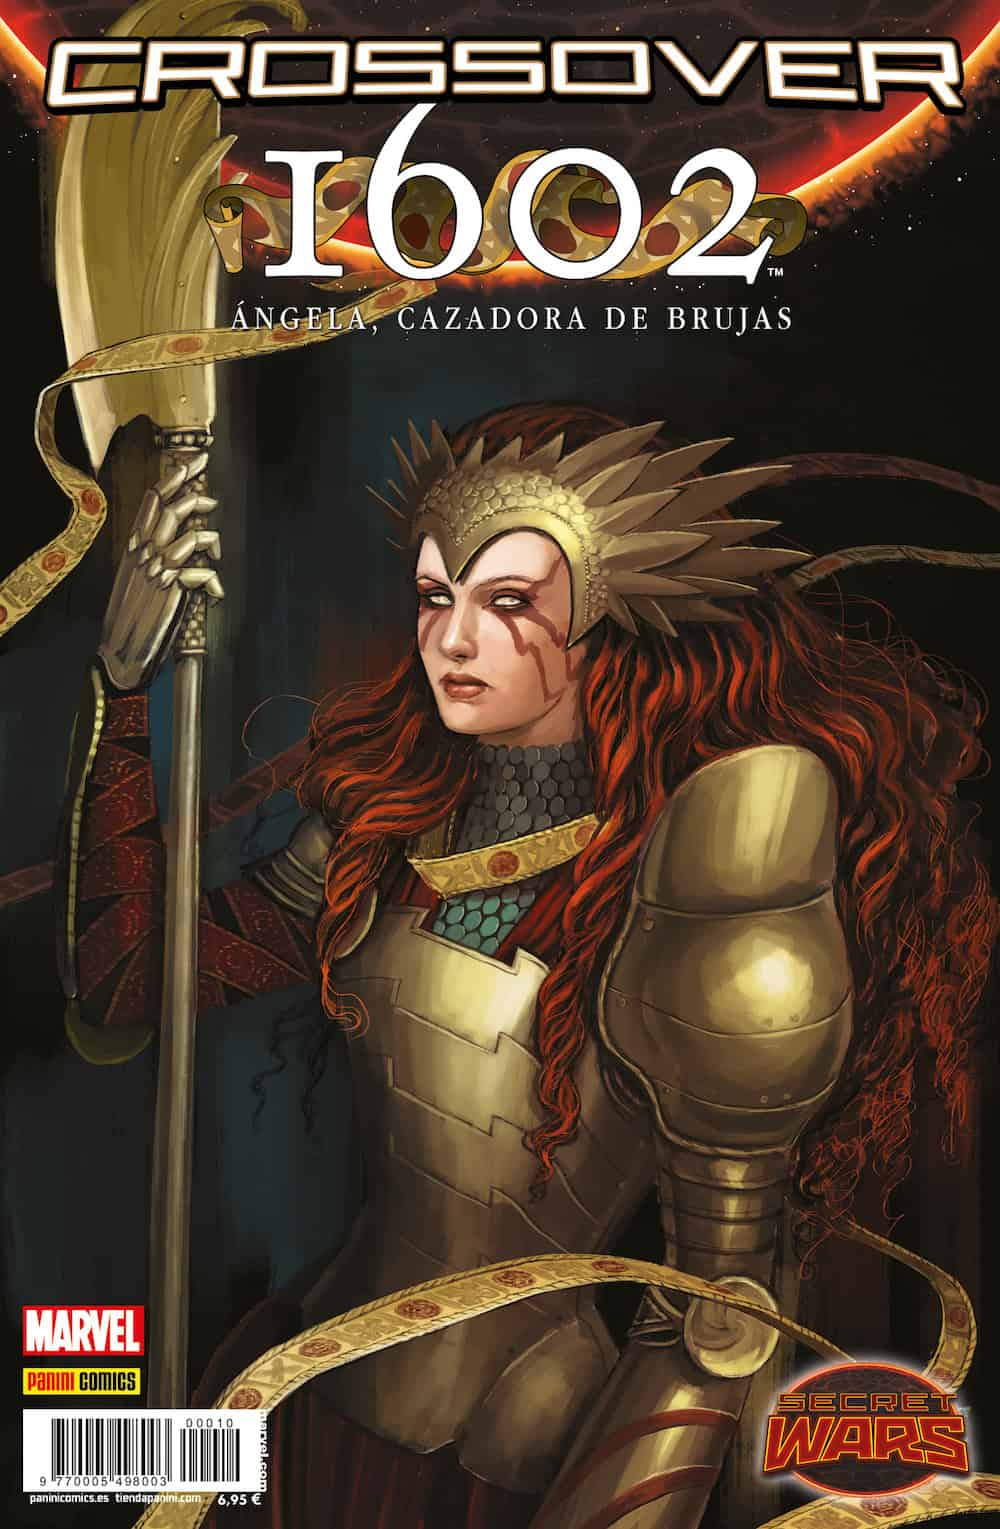 SECRET WARS. CROSSOVER 10. 1602: ANGELA, CAZADORA DE BRUJAS